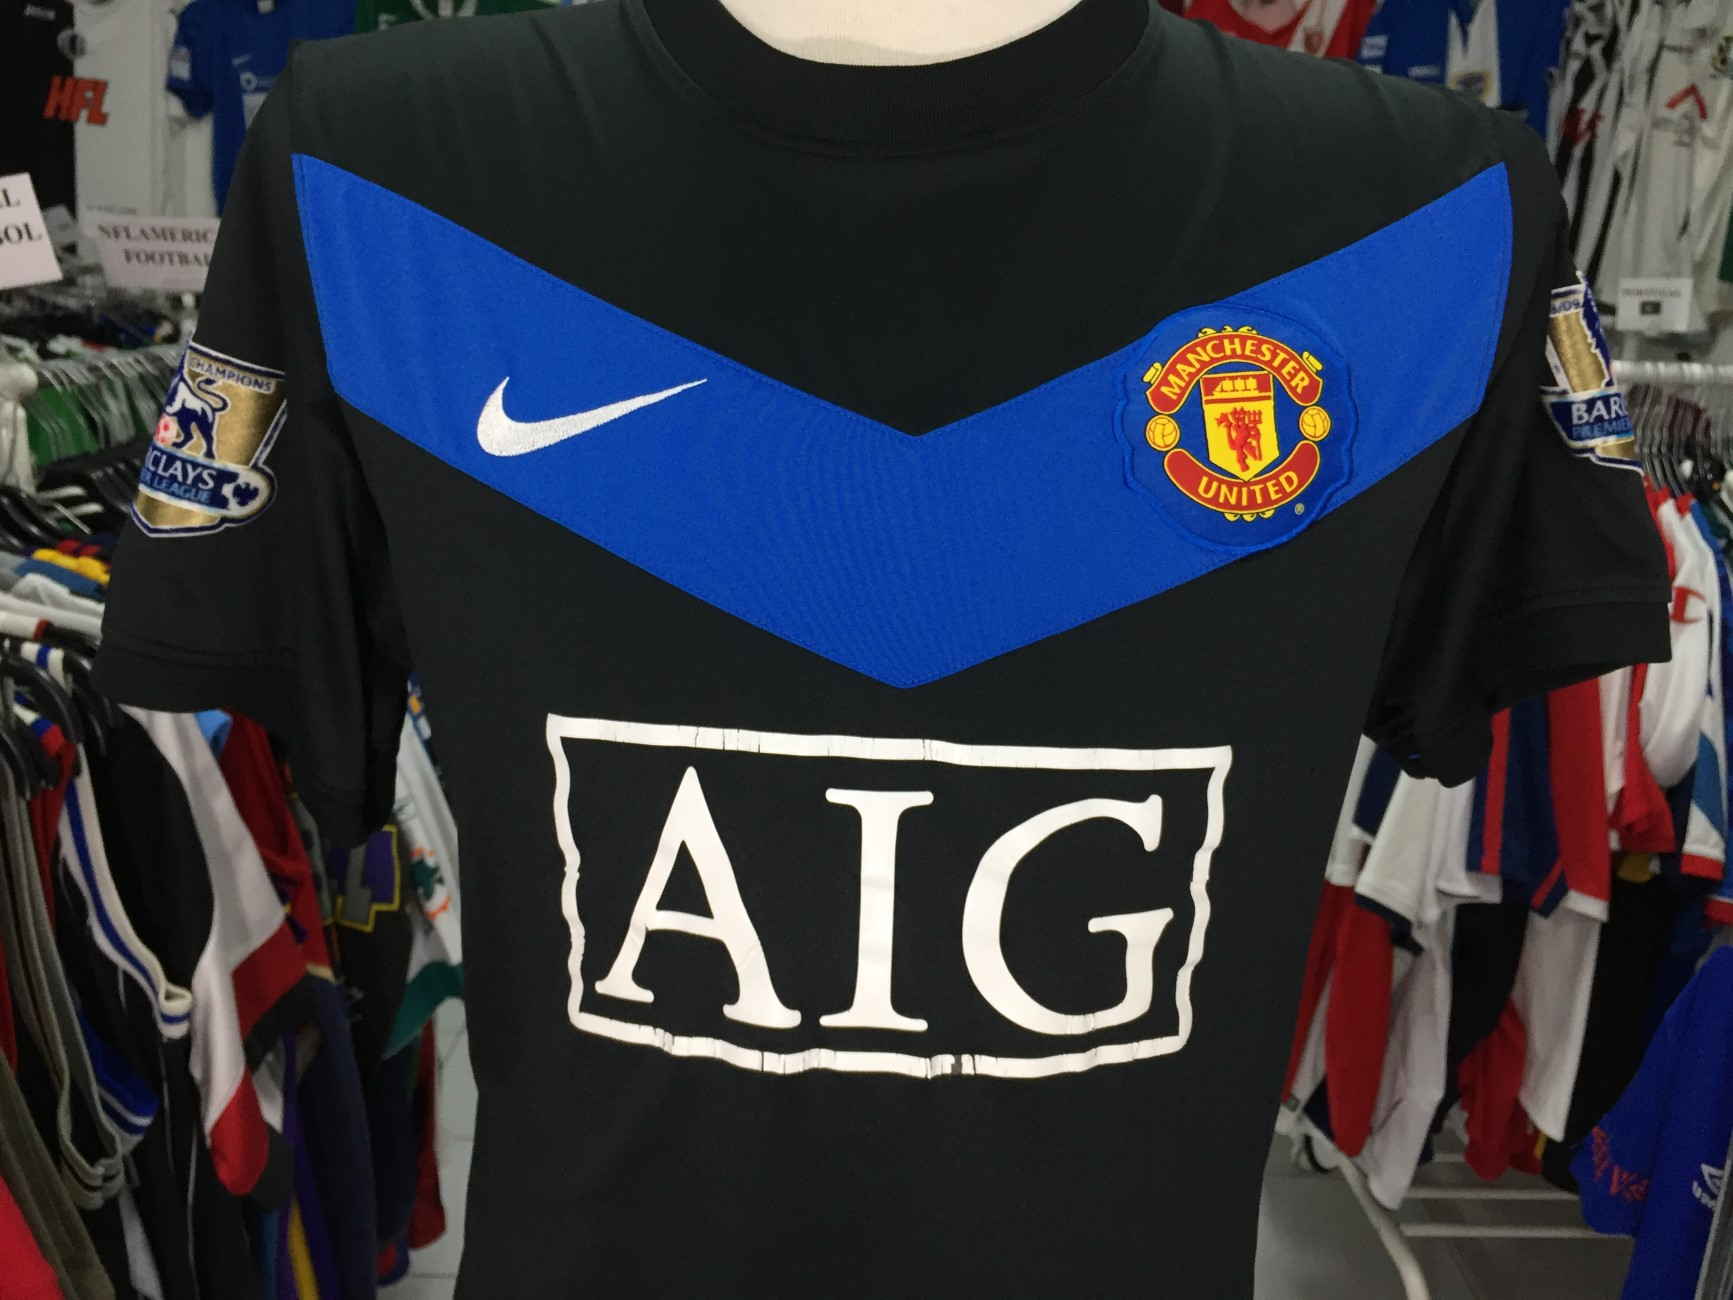 46d43ae4496 Manchester United Away Shirt 2009-10 (M)  10 Rooney Nike Camisola ...